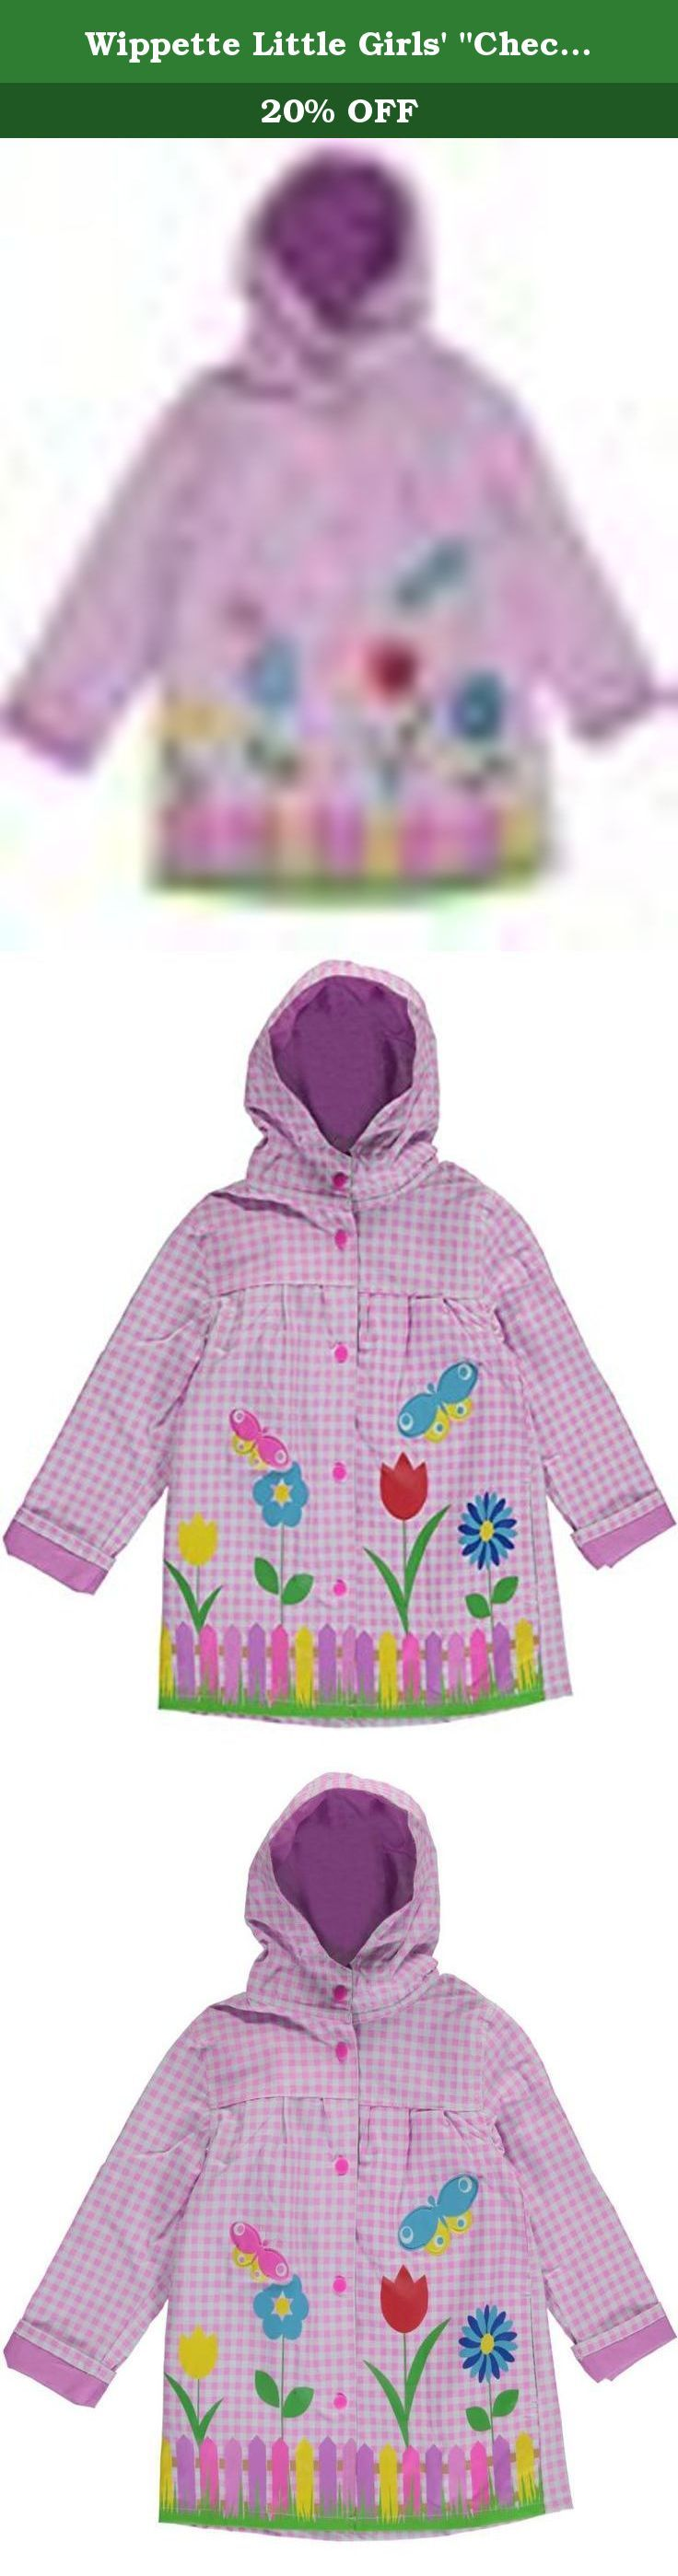 """Wippette Little Girls' """"Checkered Picnic"""" Rain Jacket - pink, 4. Give her a rainy day look a bright touch with this Wippette rain jacket! Made of checkered vinyl, it features a snap placket, gathering at chest, cuffed sleeves, and an attached hood. Puffy butterfly adornments for added fun! Jacket 100% Vinyl Lining 100% Polyester Wipe Clean Imported."""